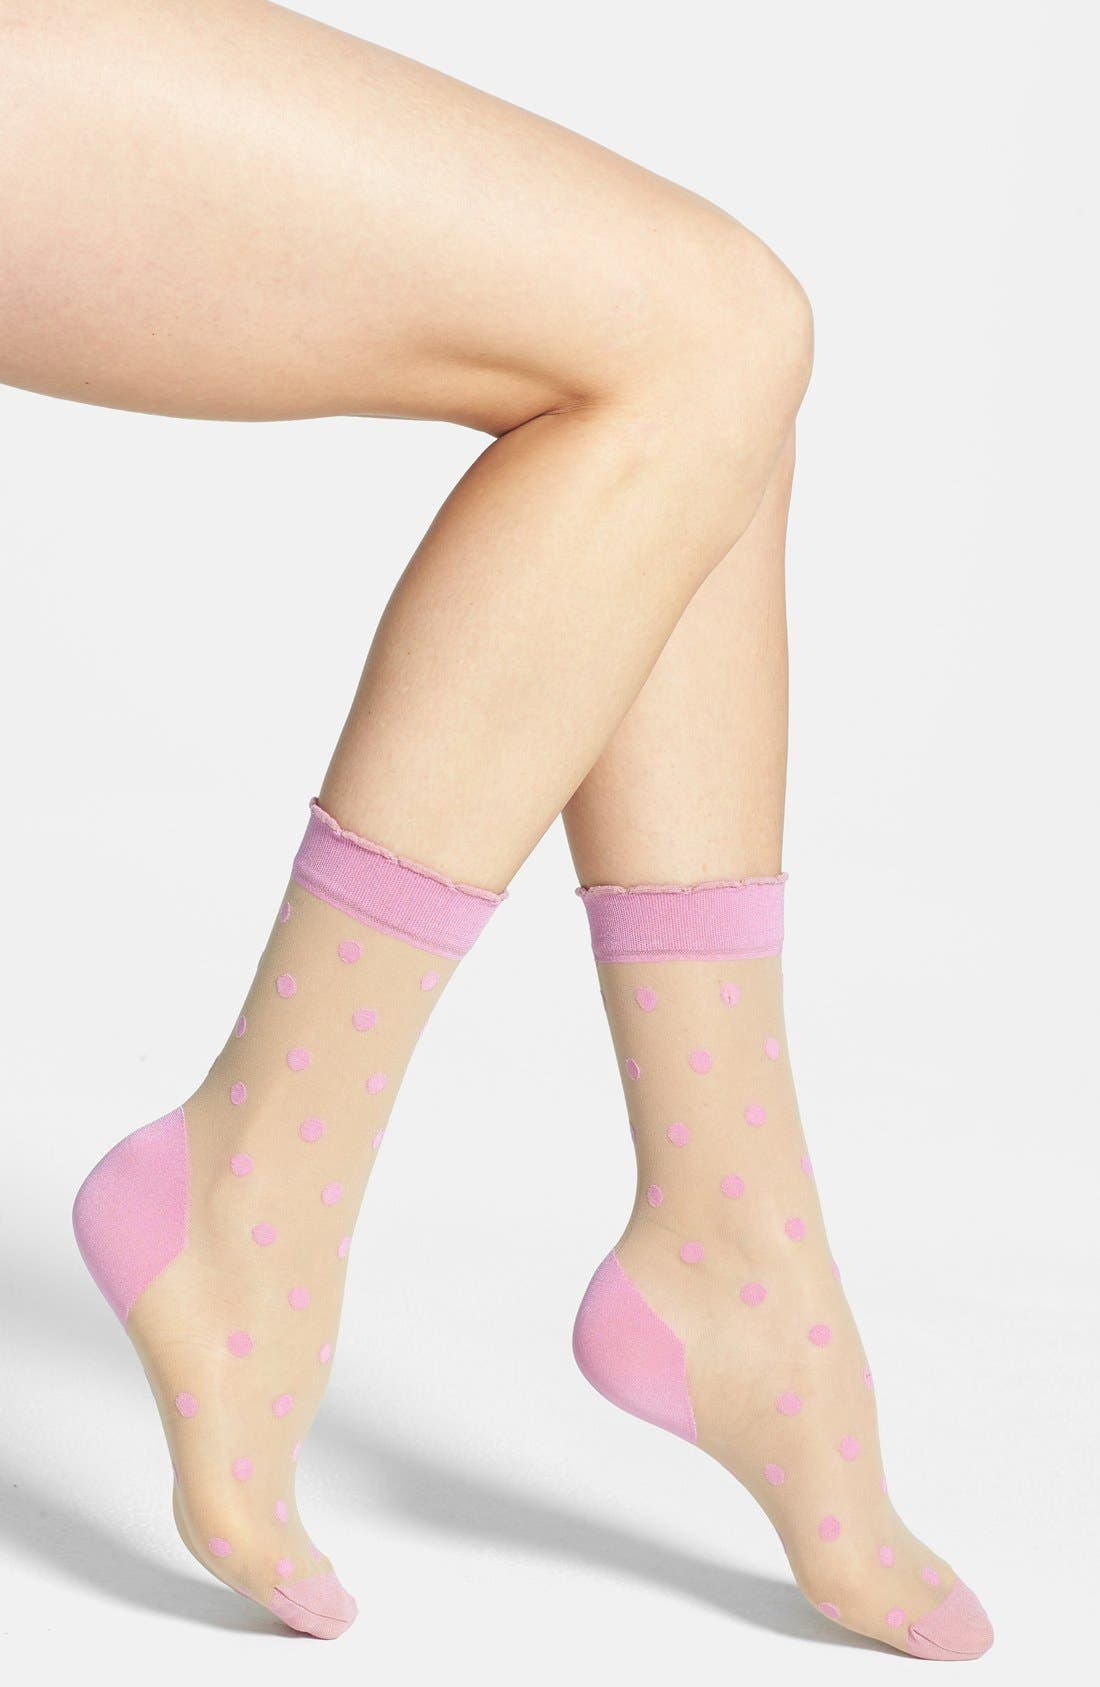 Alternate Image 1 Selected - Pretty Polly 'Pink Spot' Ankle Socks